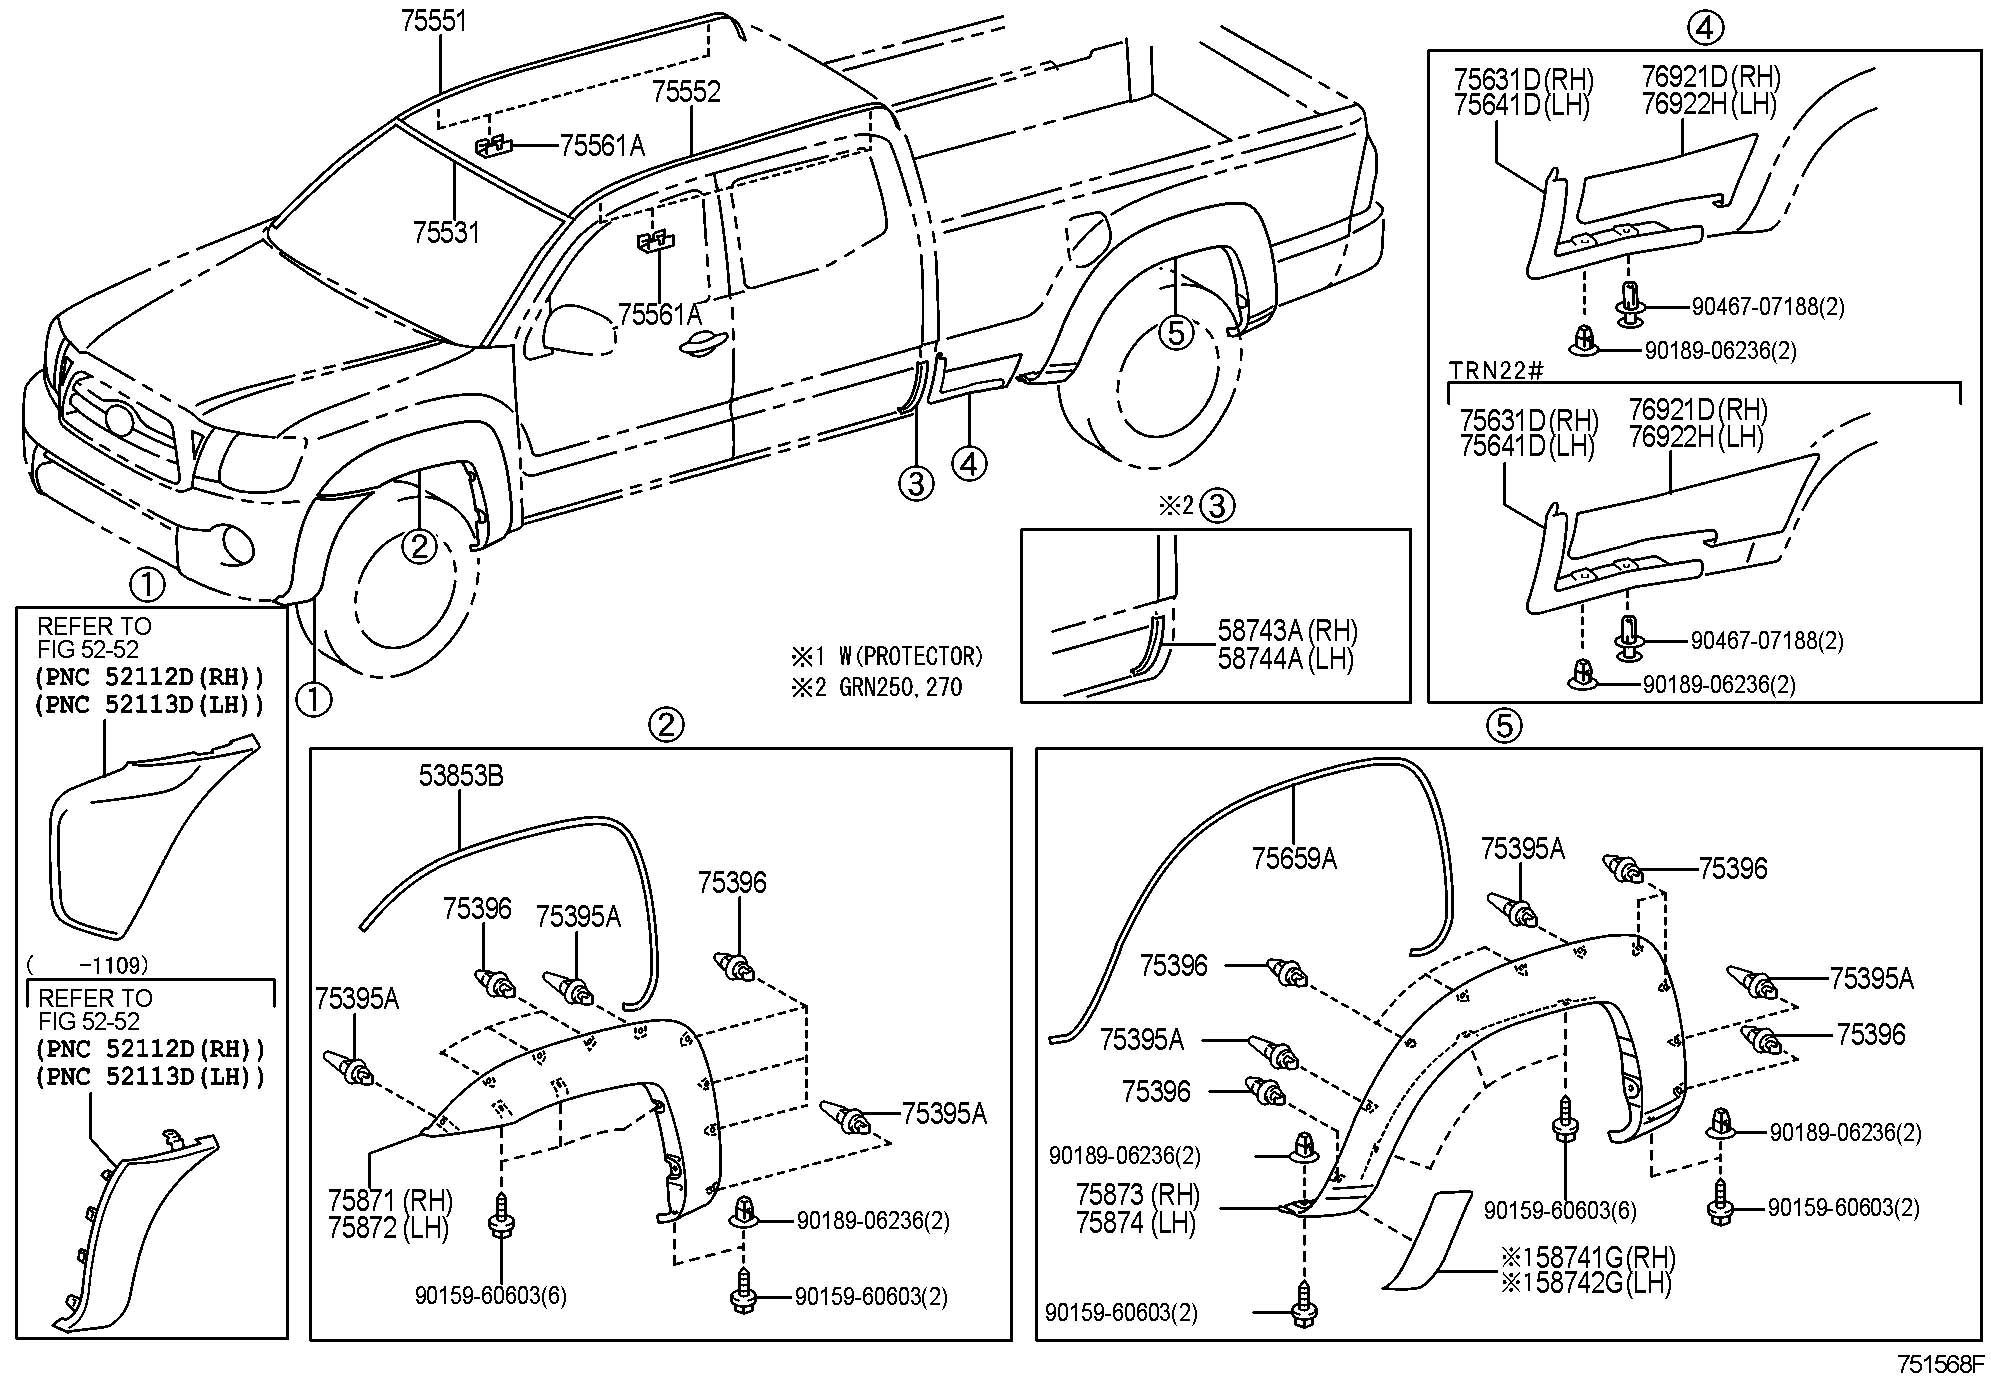 2008 Toyota 4 Runner Parts Catalog likewise Toyota 4runner Body Parts Catalog further 1988 Toyota 4runner Body Parts additionally Genuine Toyota 4runner Parts Catalog together with Kia Optima 2001 Engine Wiring Diagram. on toyota 4runner body parts catalog